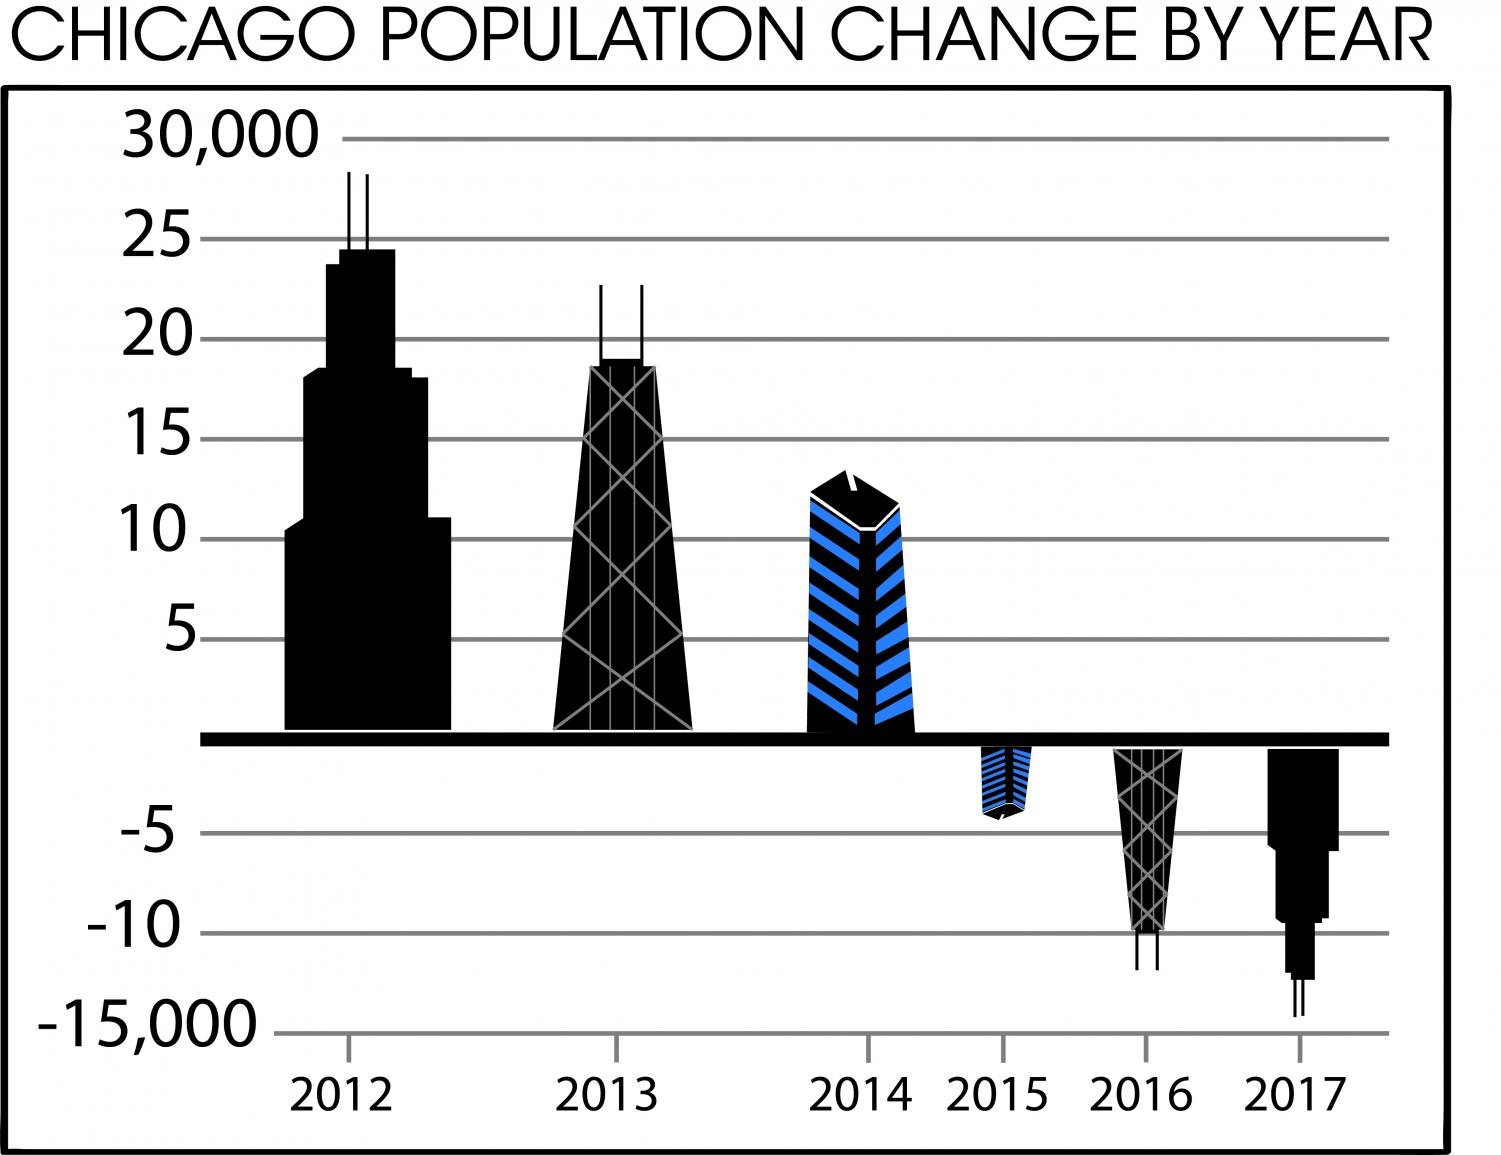 Chicago population decrease may reflect lack of jobs, crime, housing